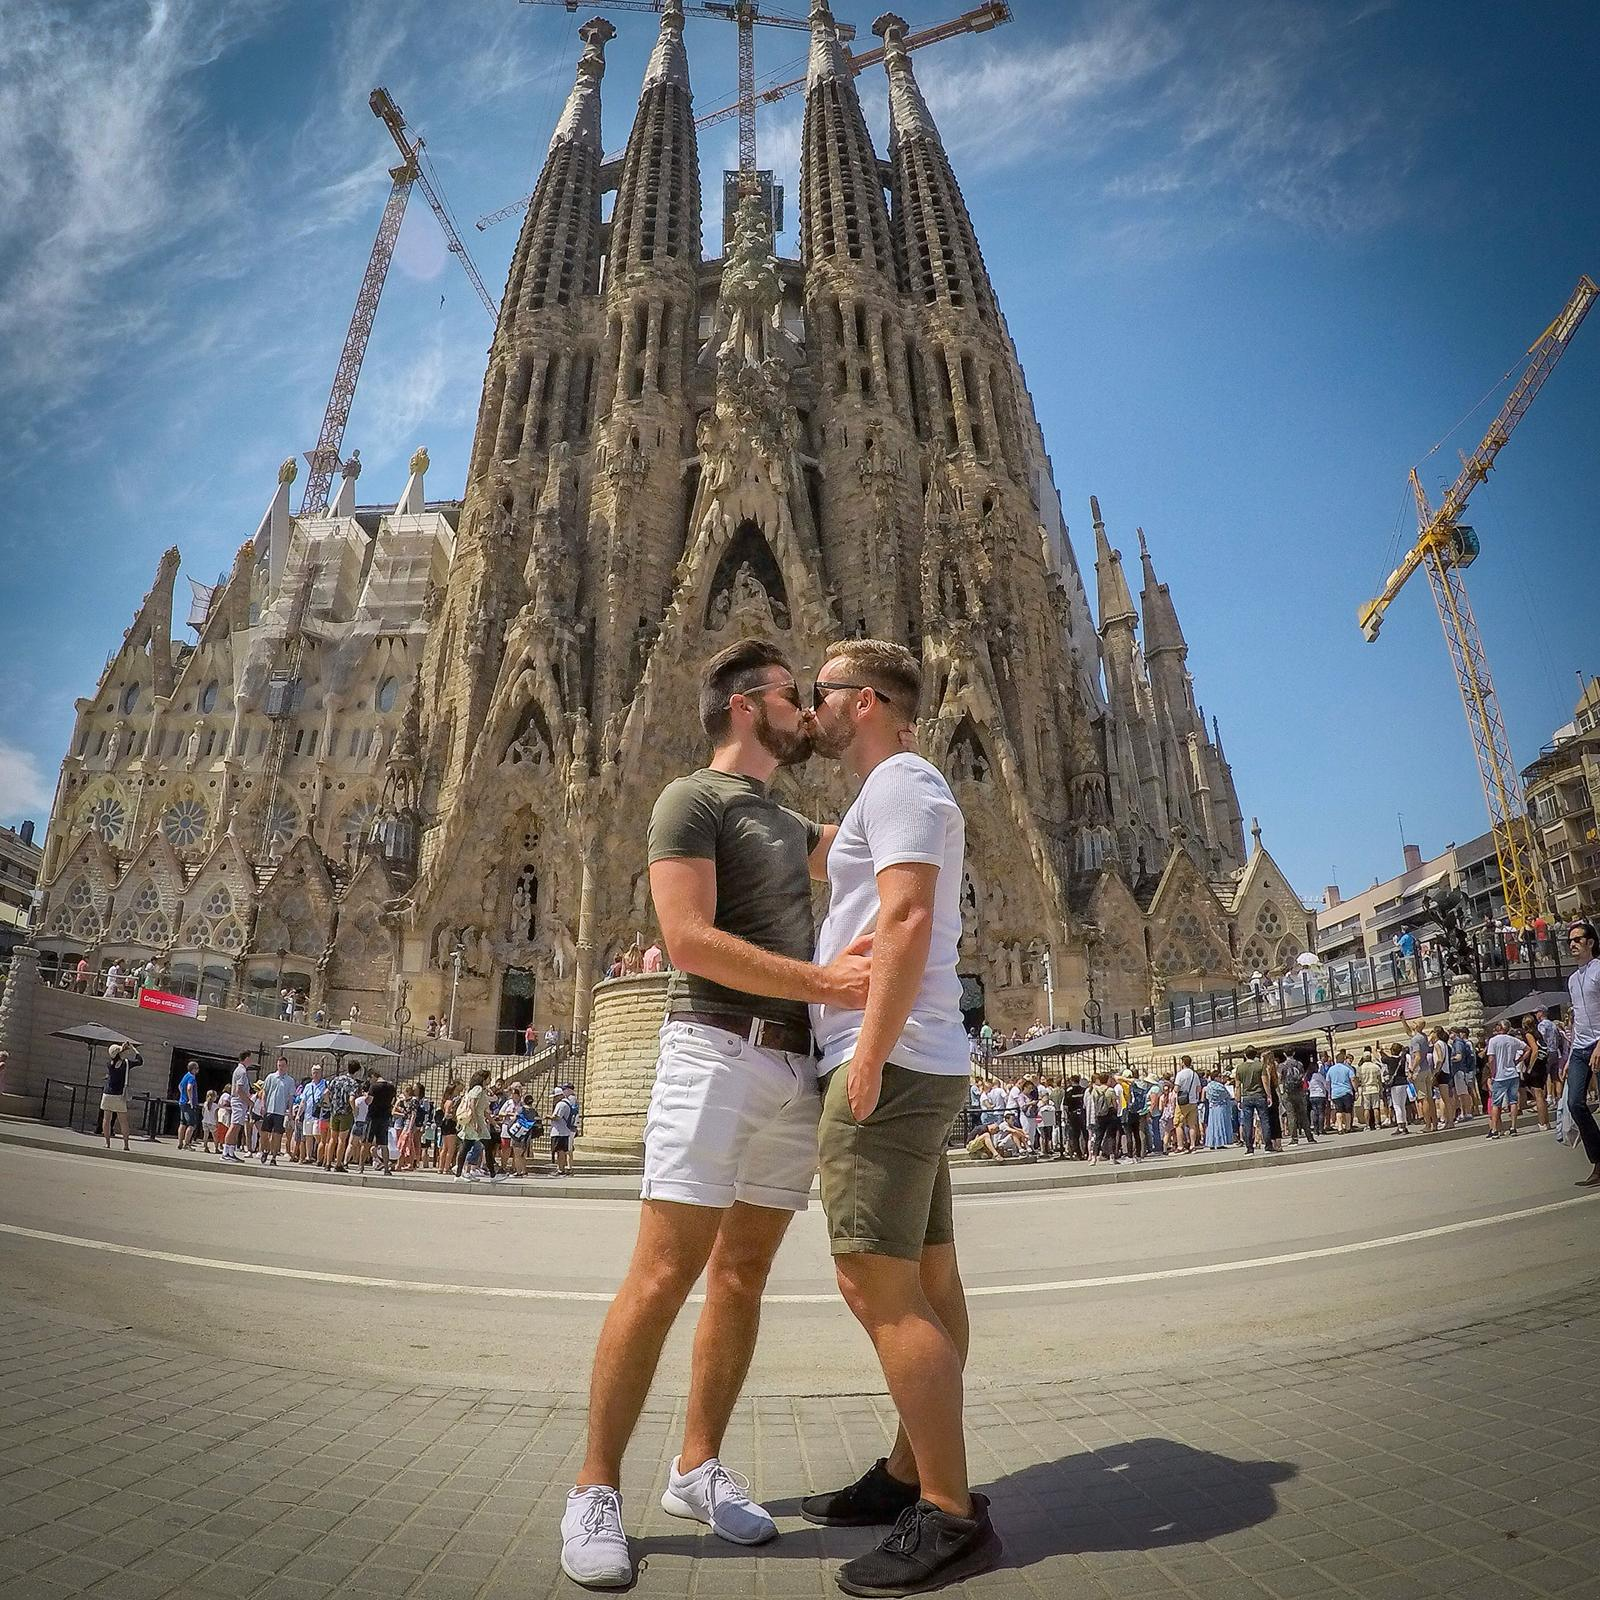 Gay Travel Europe 2021: 10 Must Visit Gay Destinations